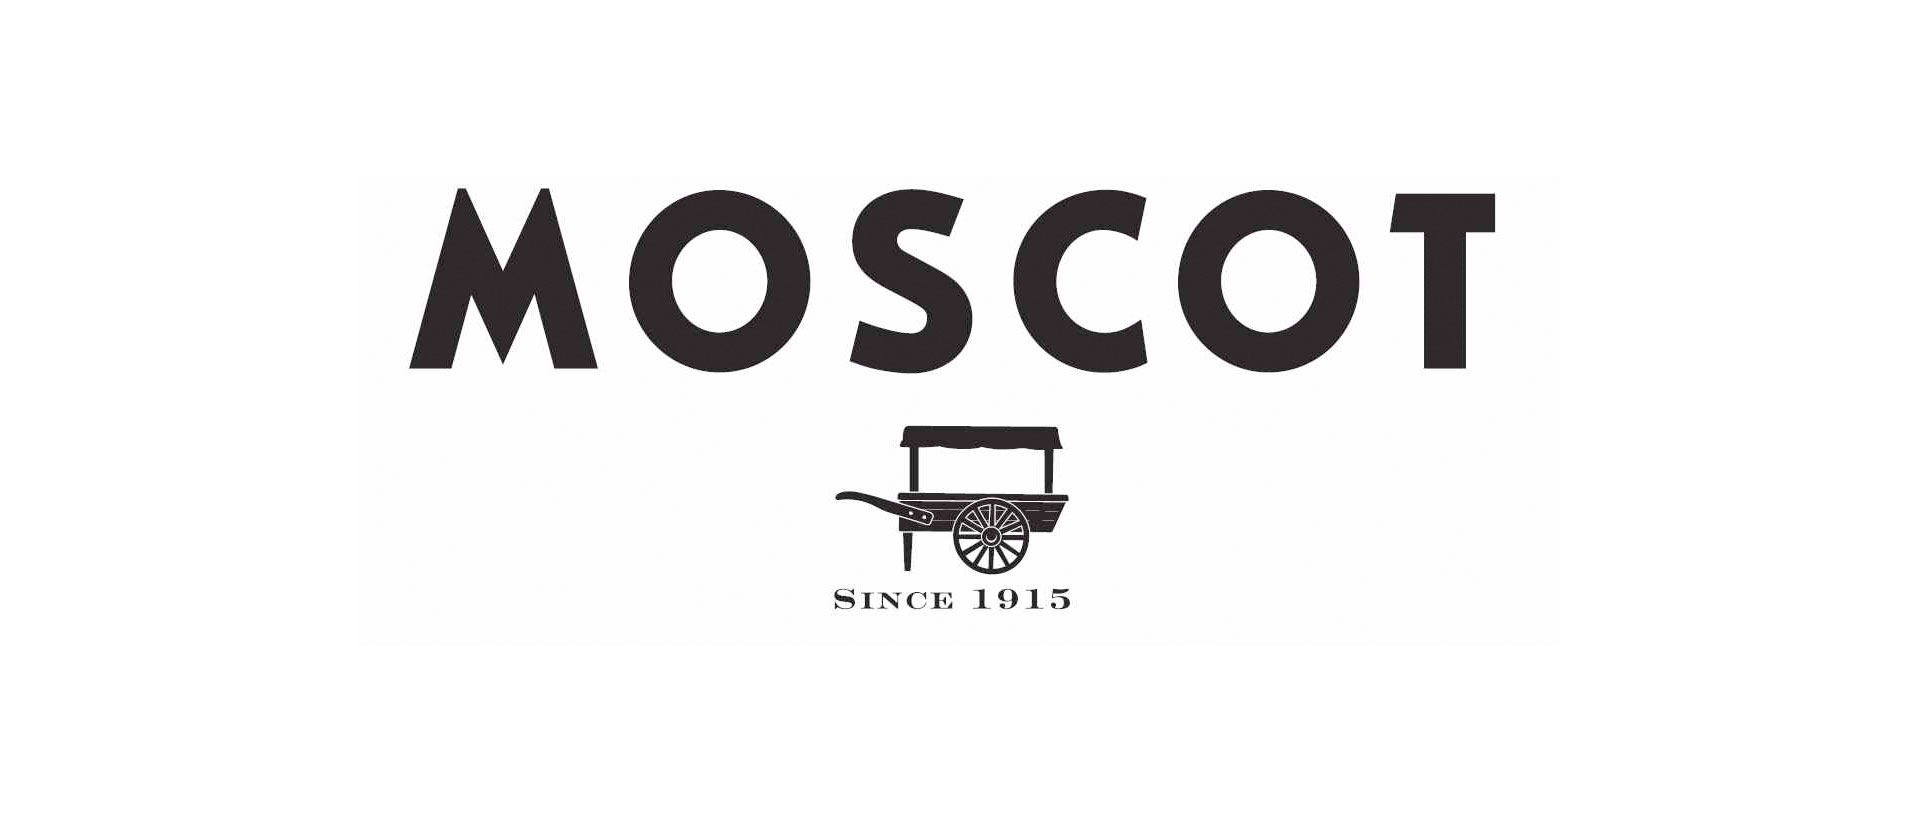 Moscot Glasses in London logo